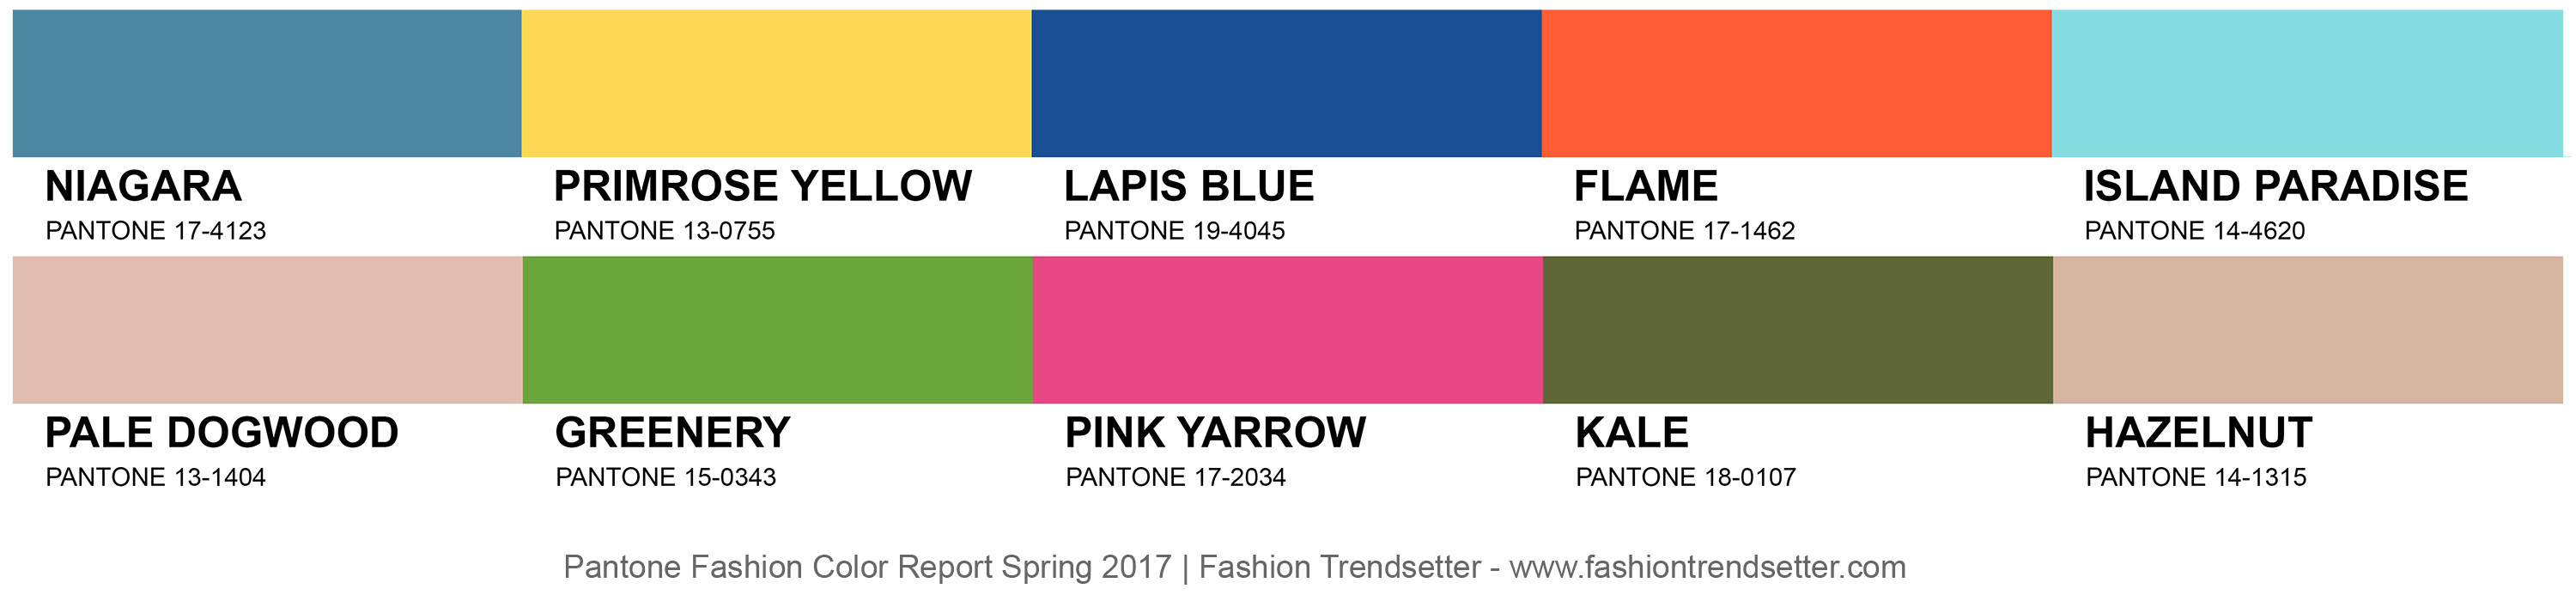 Pantone Fashion Color Report Spring 2017 | Color Card by Fashion Trendsetter